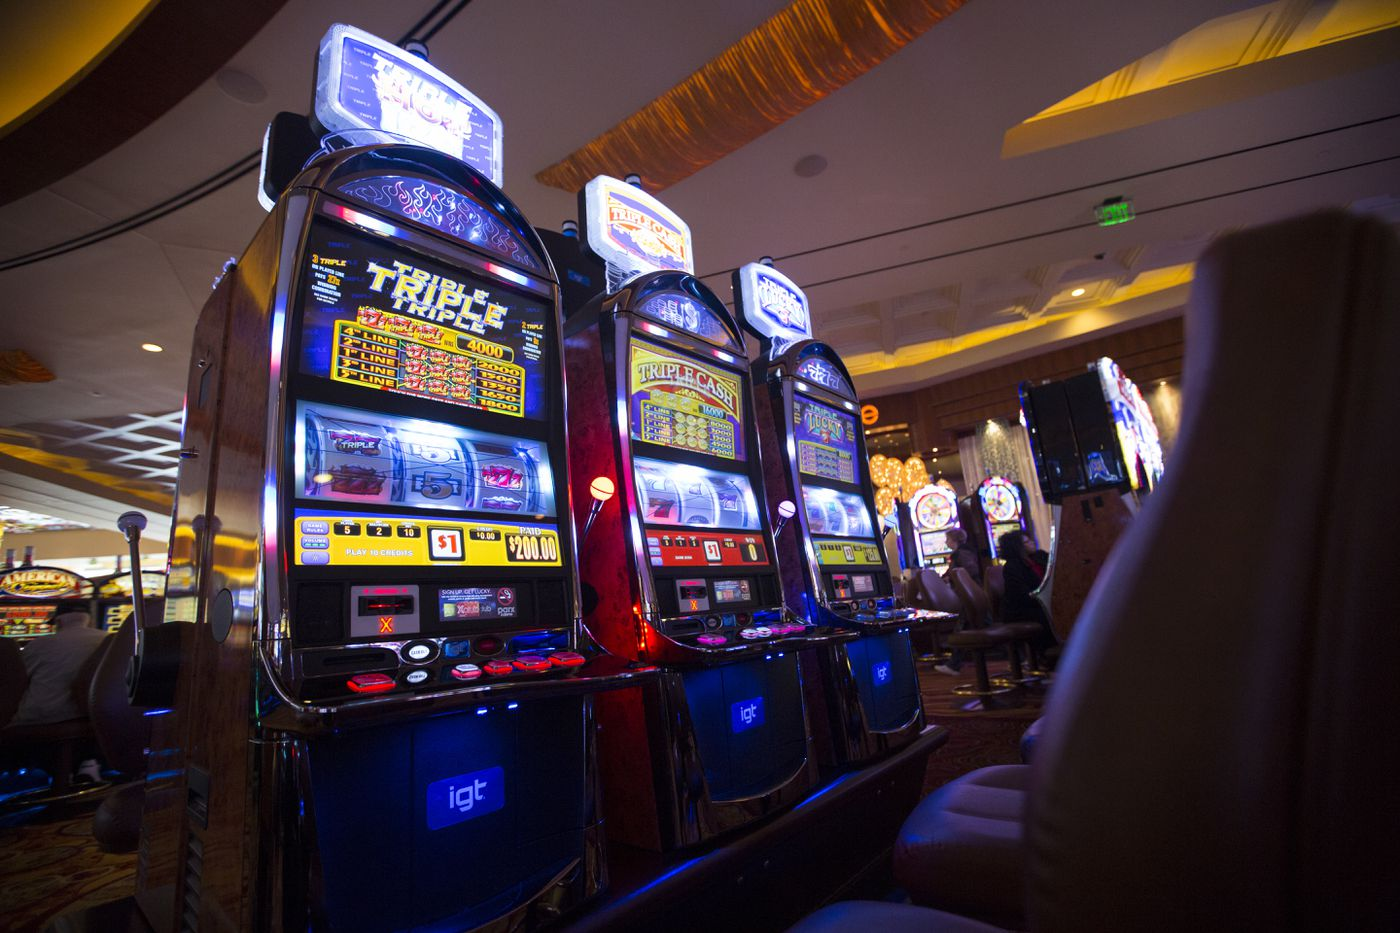 Pa. approves 3 online gaming licenses, but don't expect internet betting to begin right away